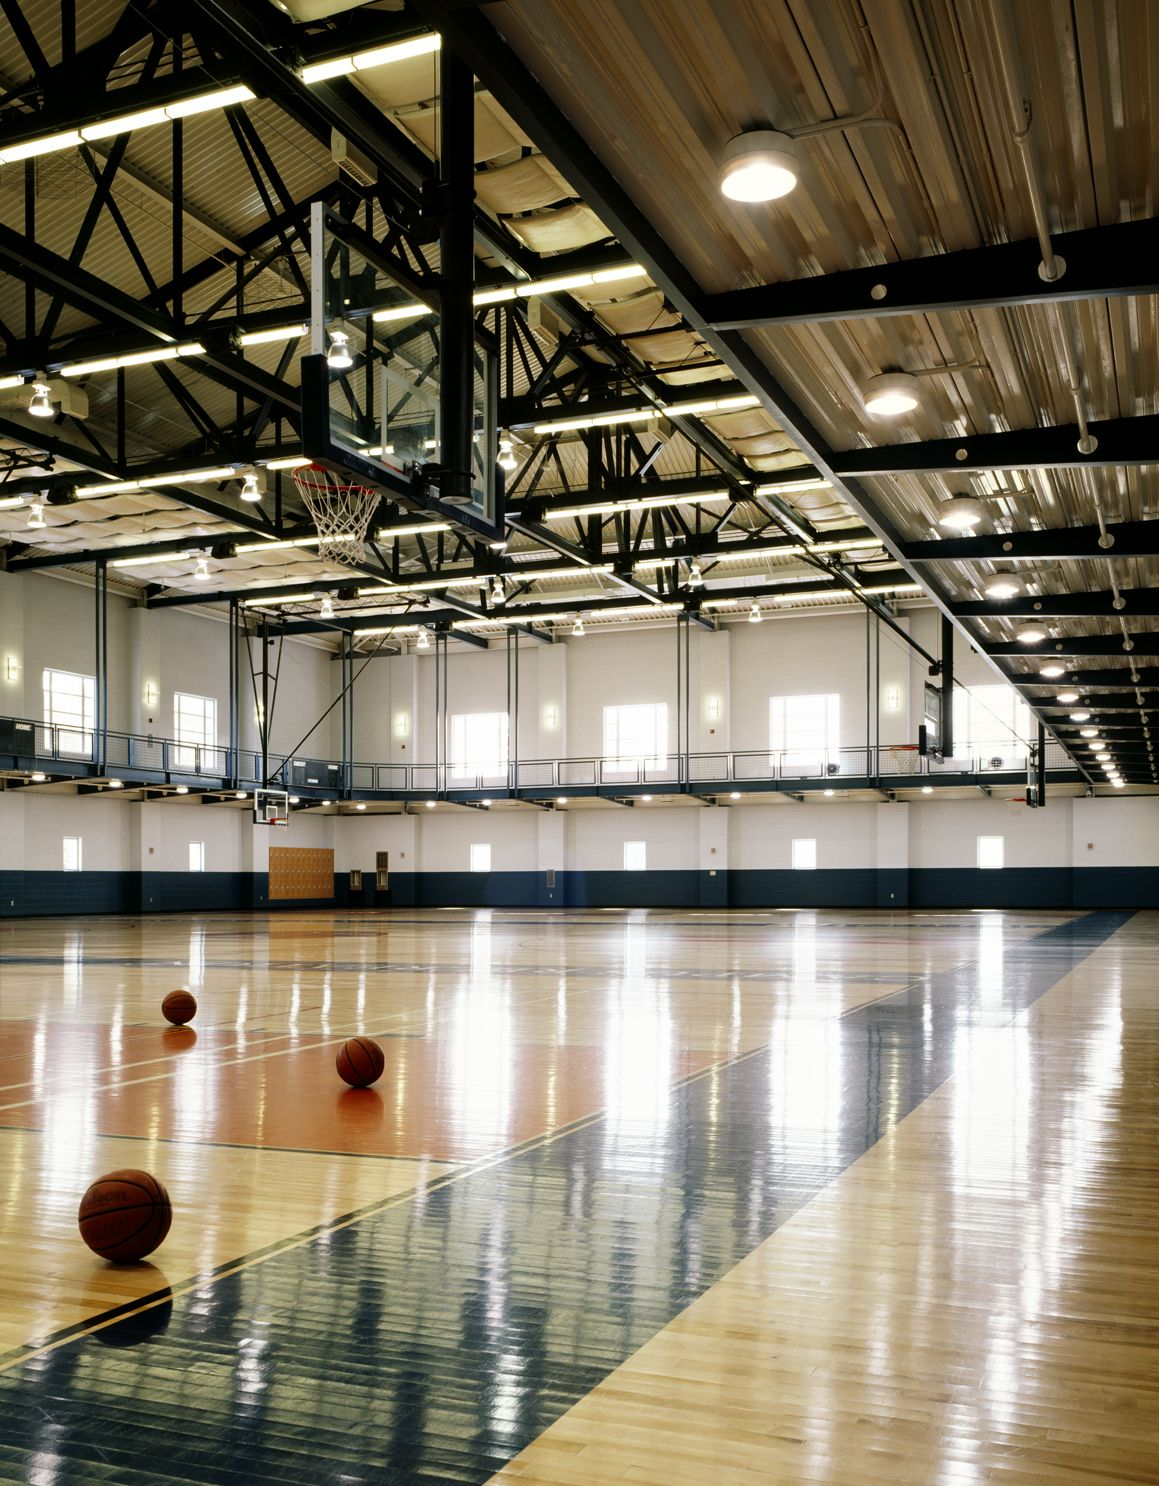 University Of Illinois At Urbana Champaign Campus Recreation Center East Crce Triple Court Gymnasium Voa Basketball Room Indoor Volleyball School Campus